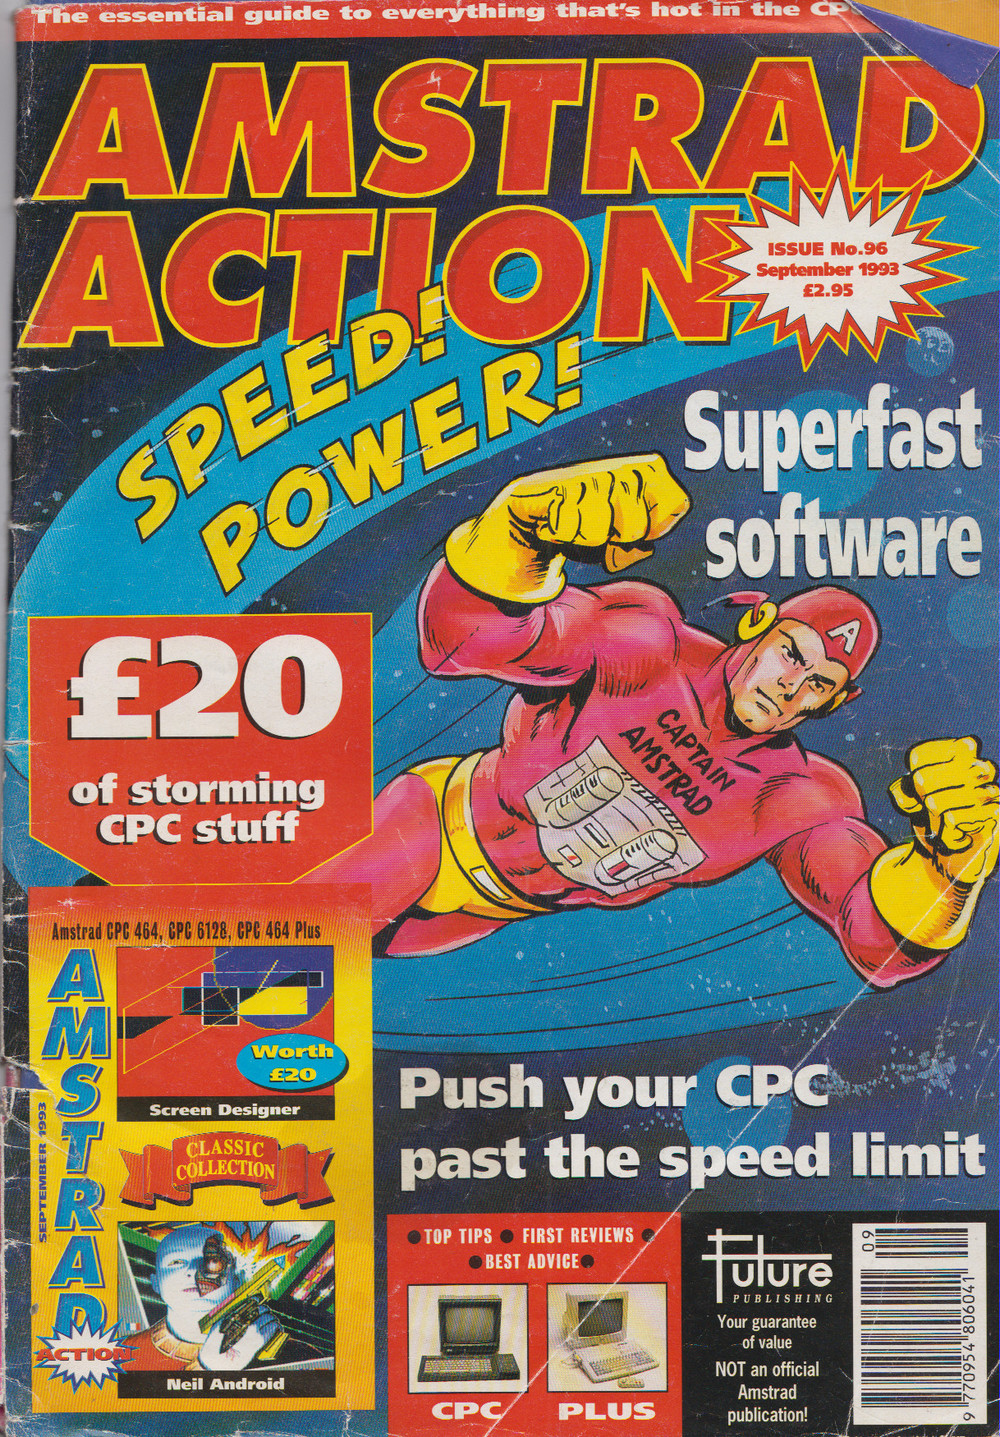 Scan of Document: Amstrad Action - September 1993